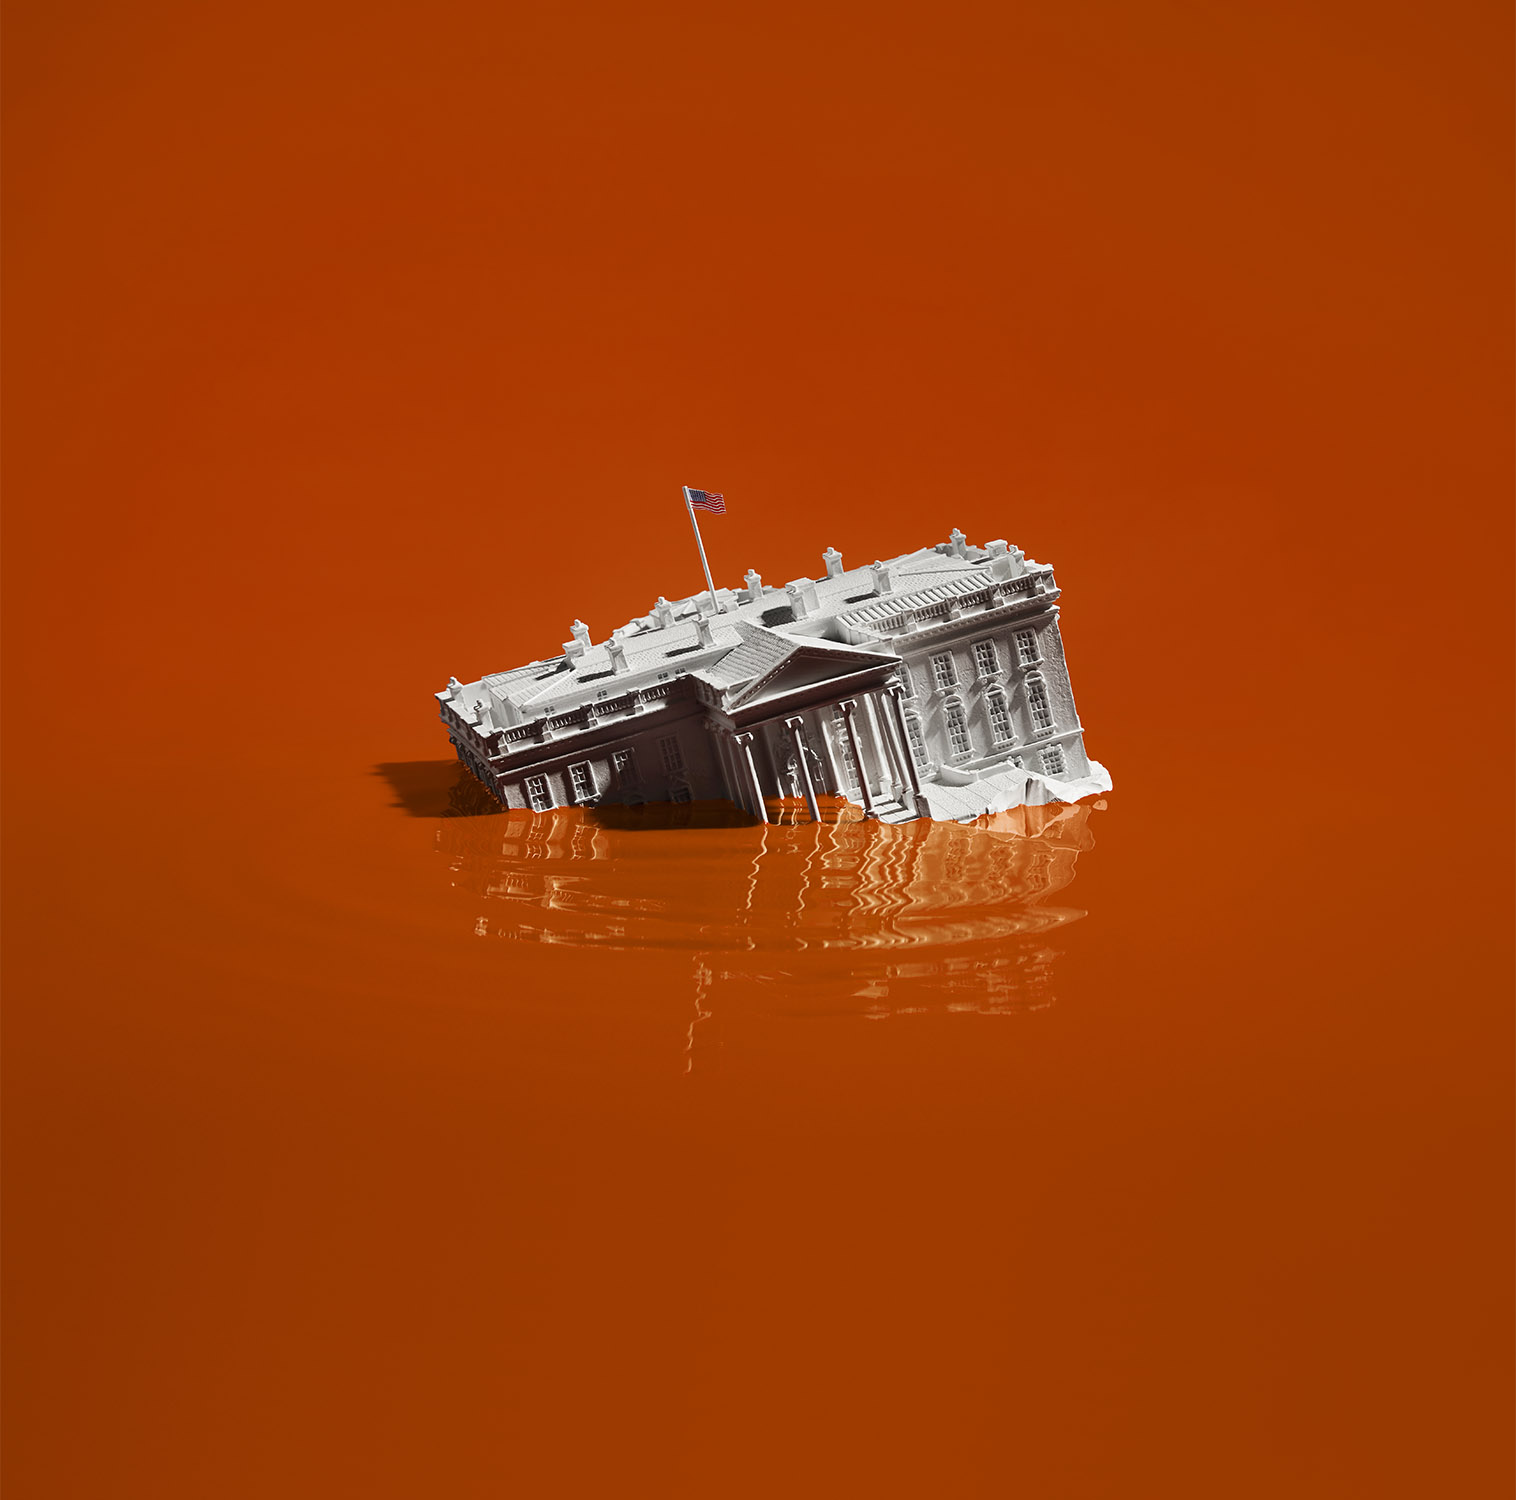 WhtHouse_Sinking_01-ORANGE